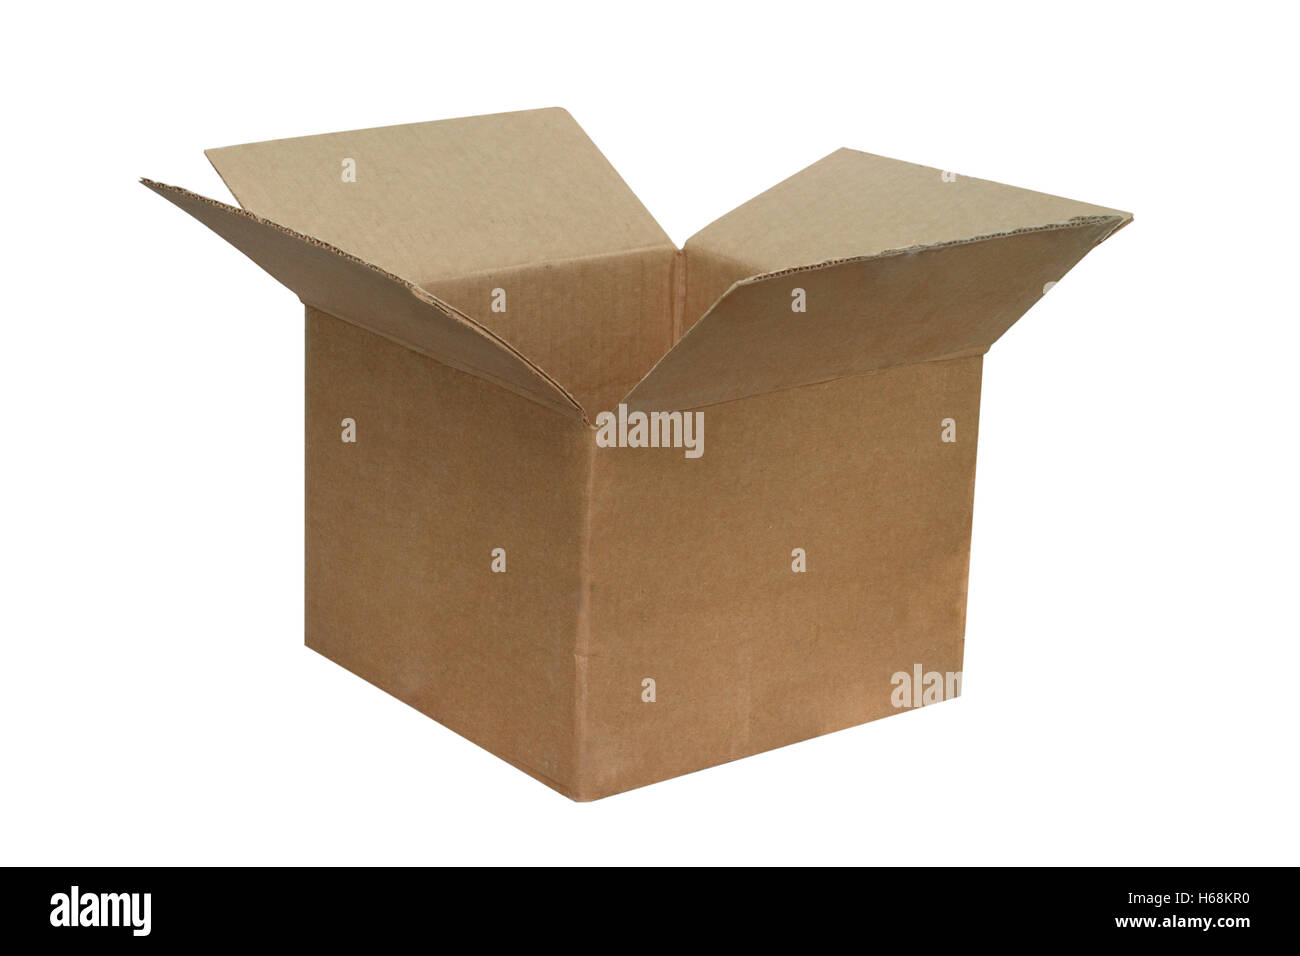 The open cardboard box is isolated on a white background - Stock Image